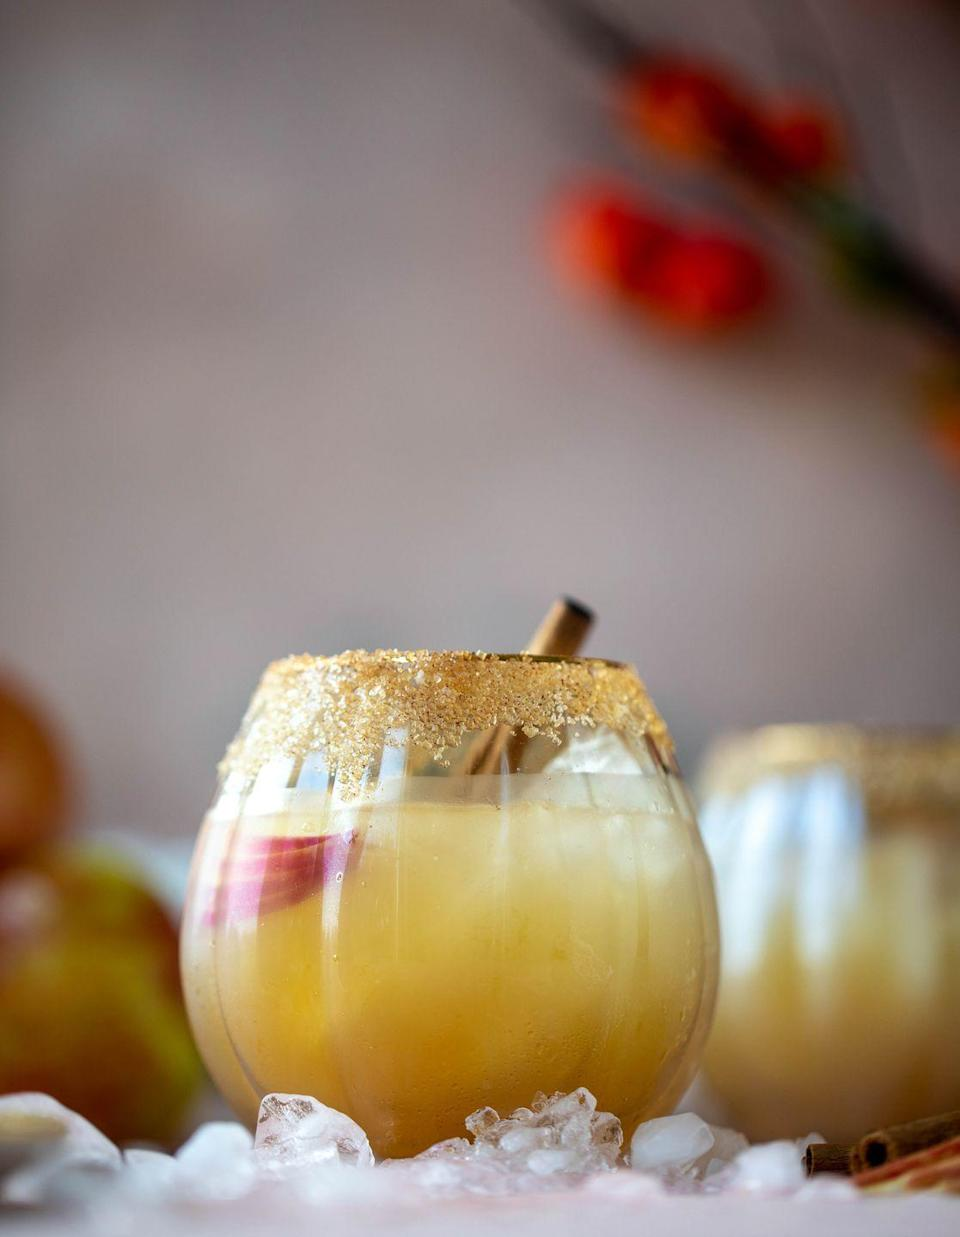 """<p>A little smoky, yet a little citrusy at the same time, this cocktail is the perfect marriage of flavors. For an added treat, skip the salt and line the glass with spiced sugar.</p><p><a class=""""link rapid-noclick-resp"""" href=""""https://www.howsweeteats.com/2019/10/apple-cider-mezcal-margarita/"""" rel=""""nofollow noopener"""" target=""""_blank"""" data-ylk=""""slk:GET THE RECIPE"""">GET THE RECIPE</a></p>"""